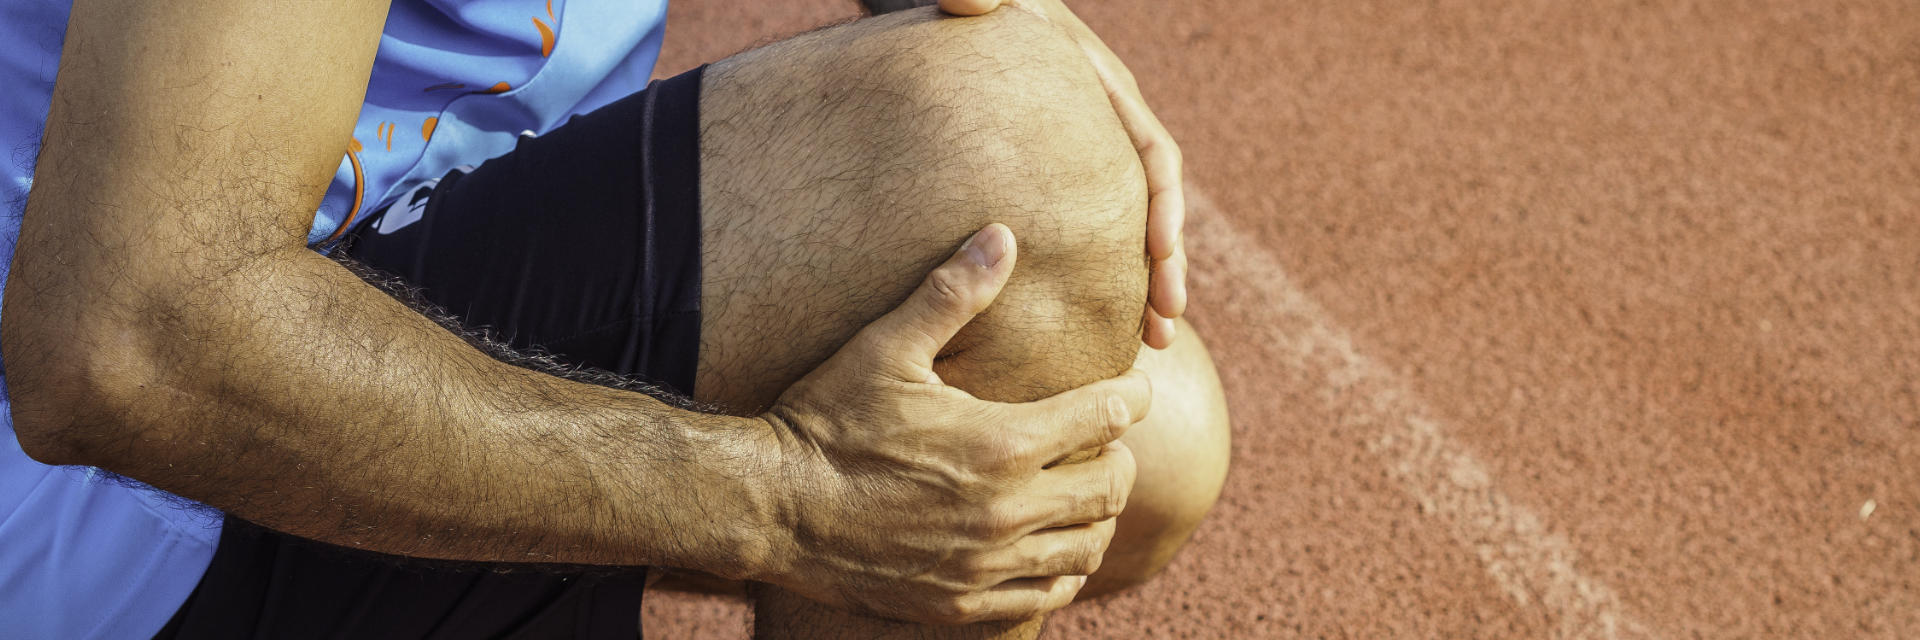 An athlete with knee pain touching the painful knee area.